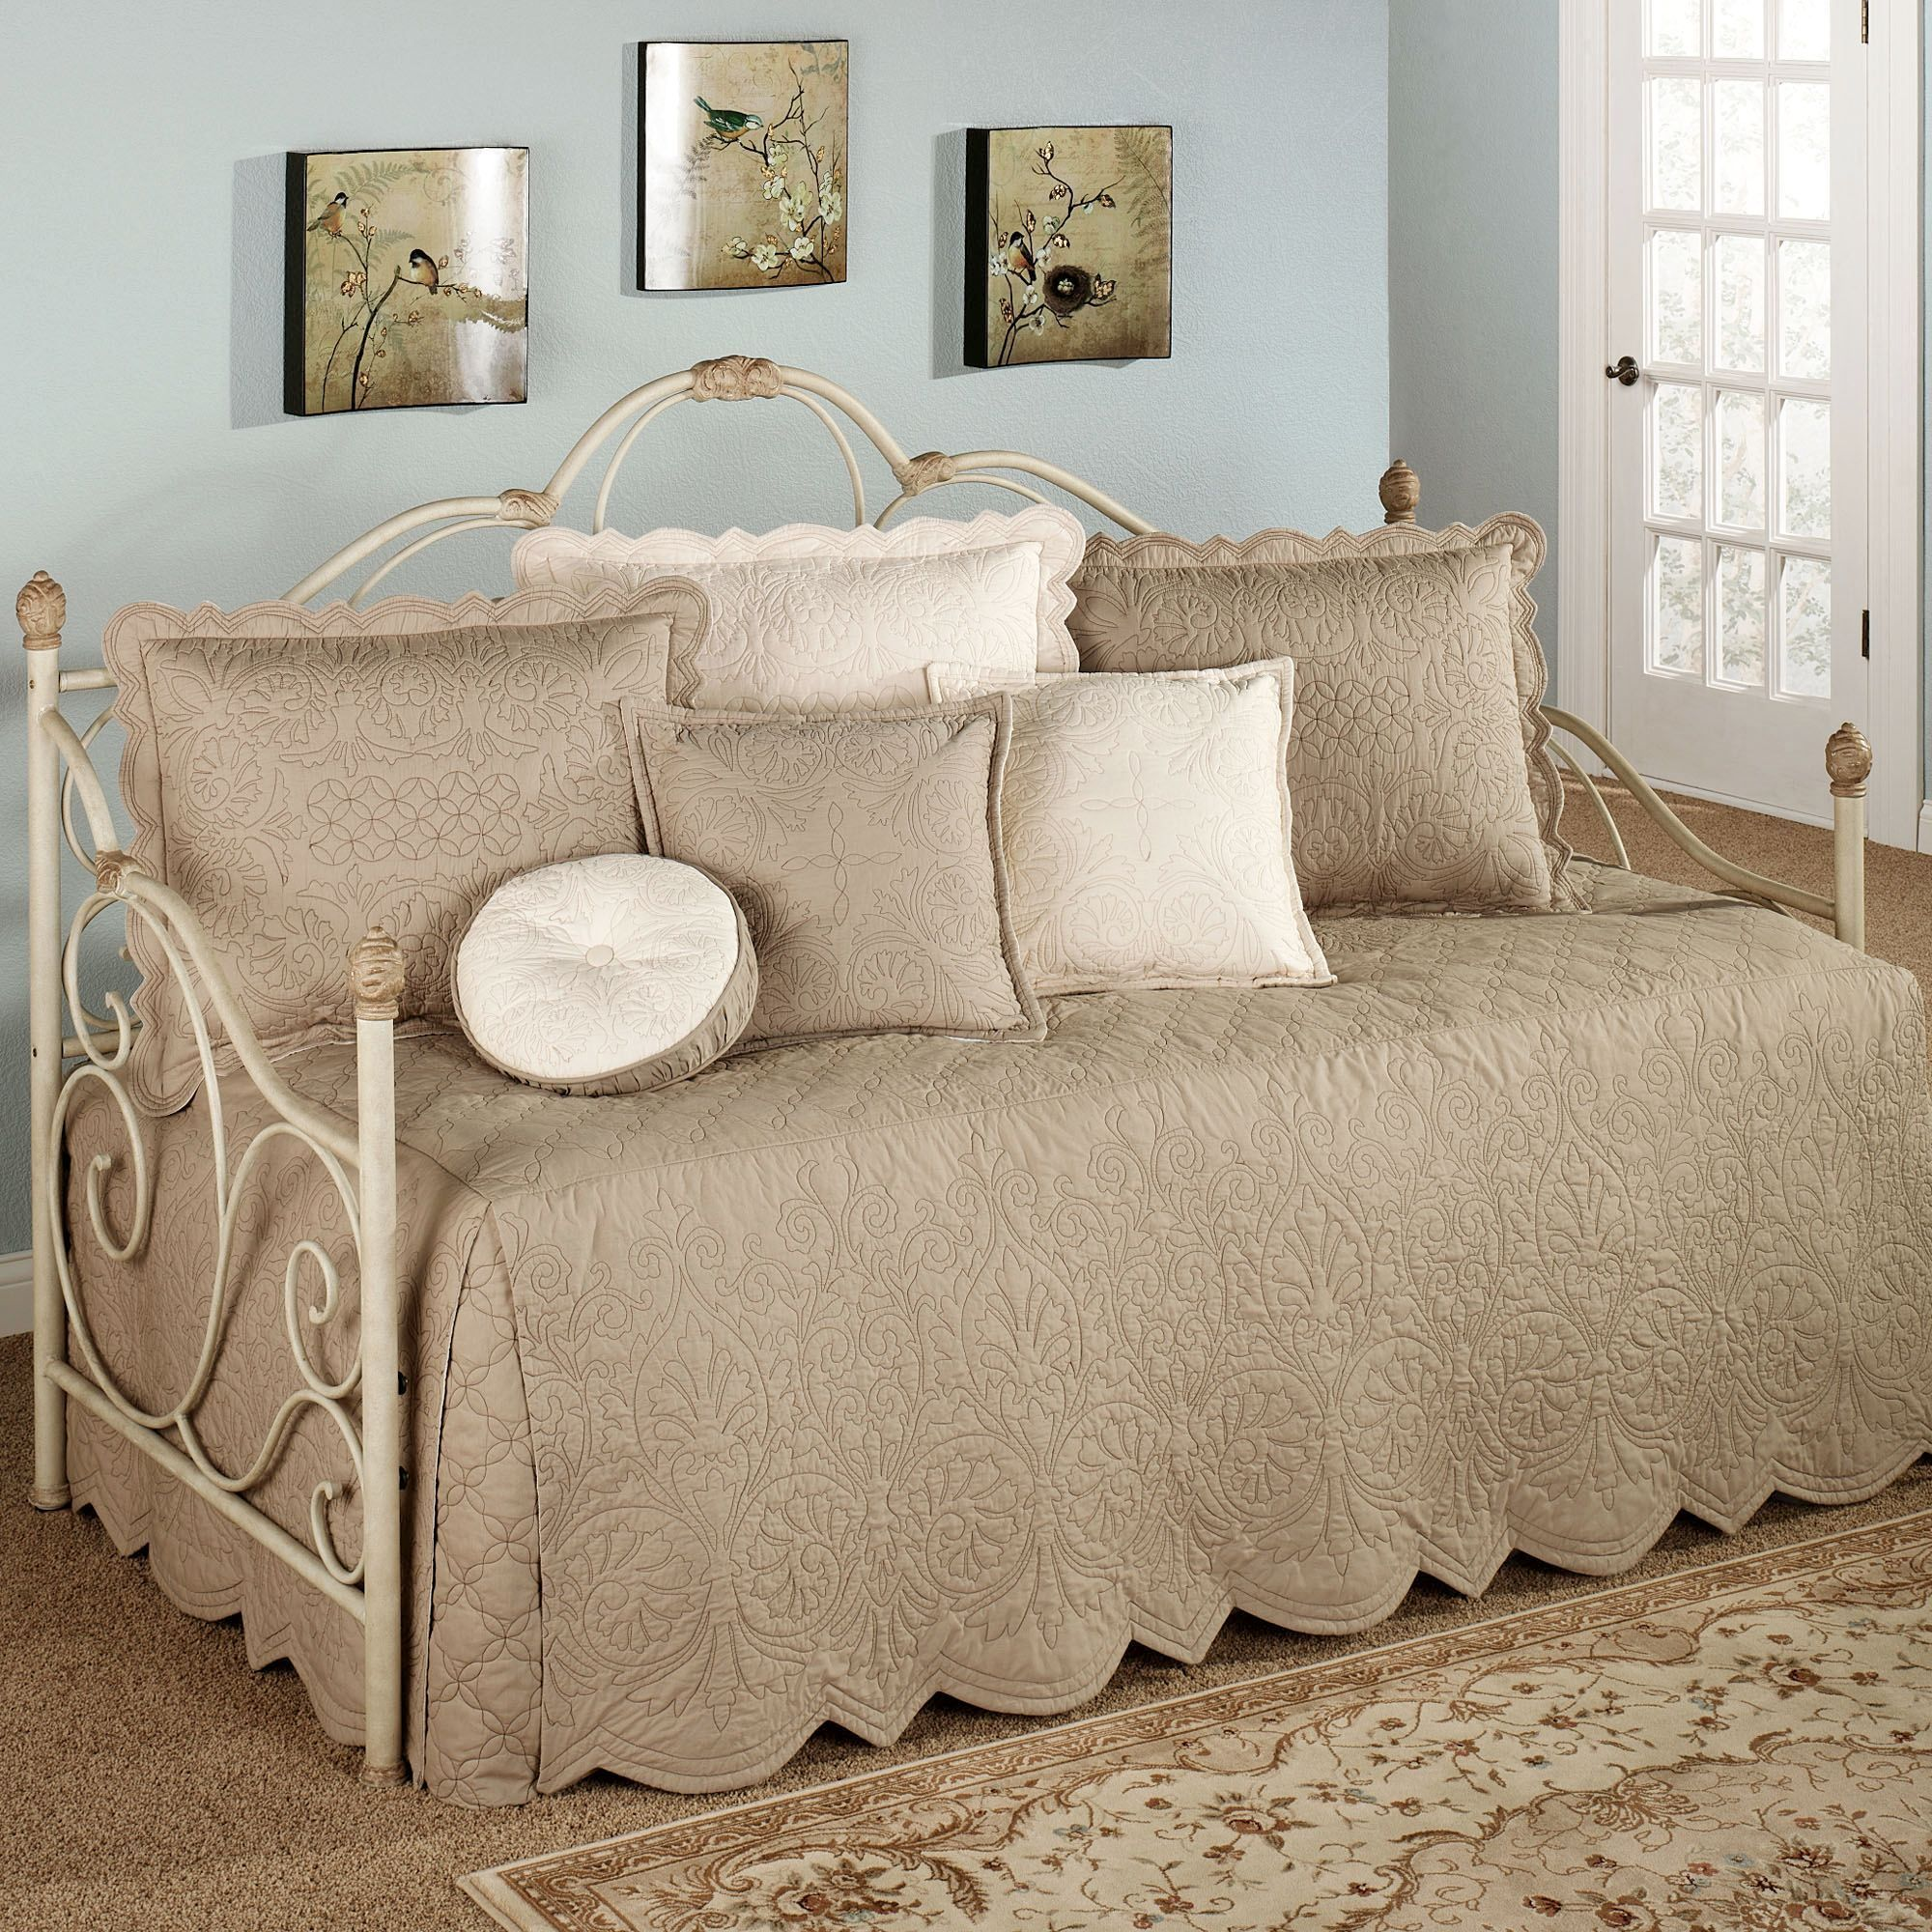 comforter daybed for quilts great kids image sets idea of quilt